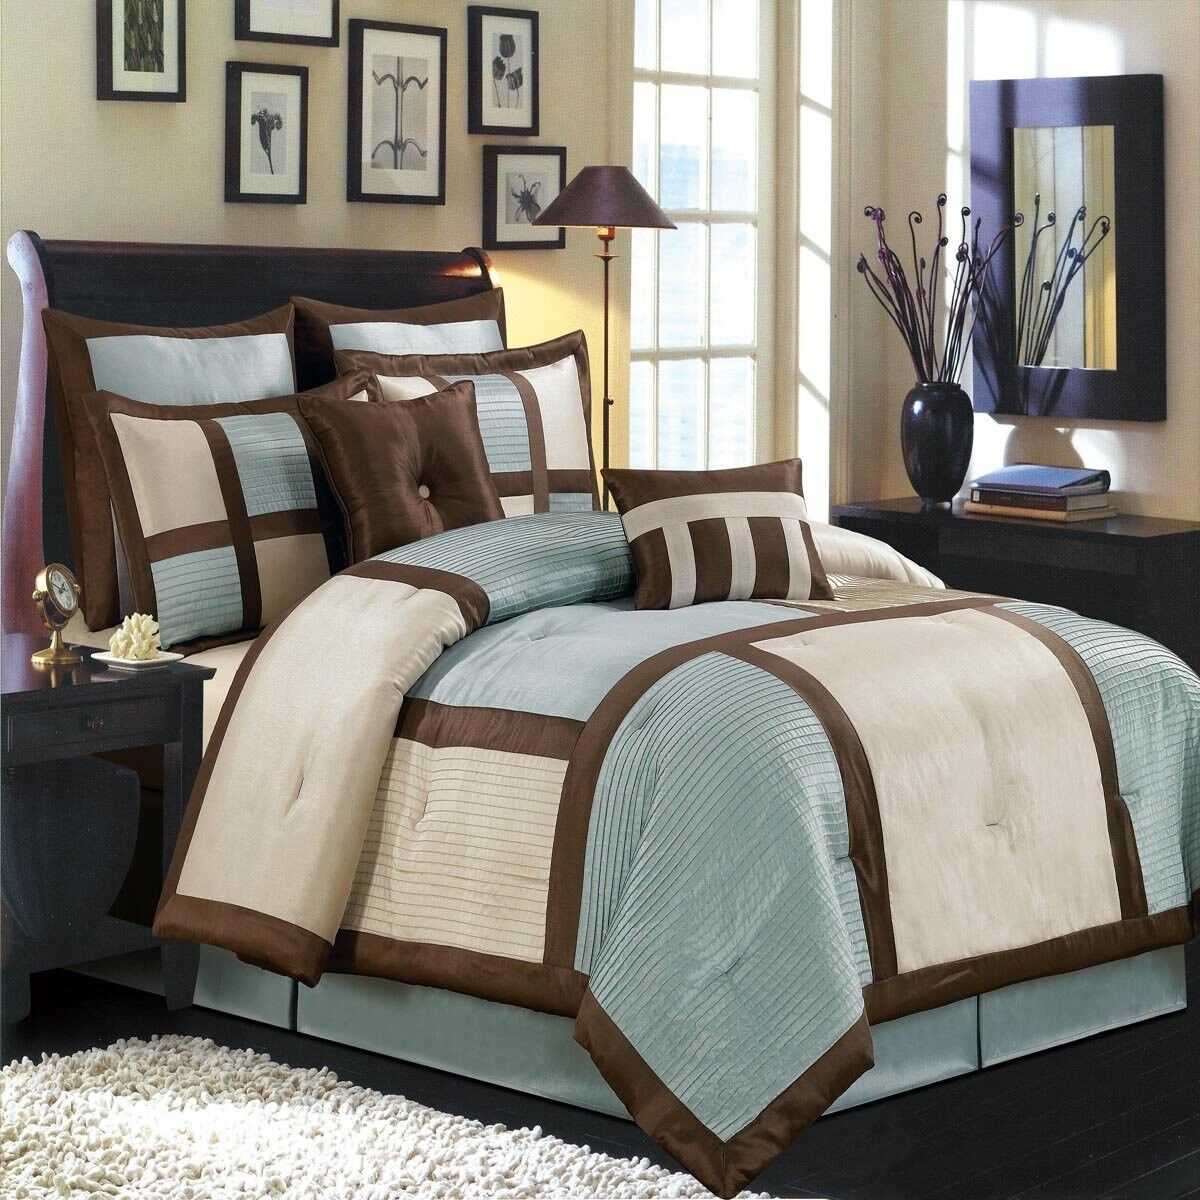 Morgan 12 PC Luxury Bed in a Bag set Includes Comforter Sheets Shams